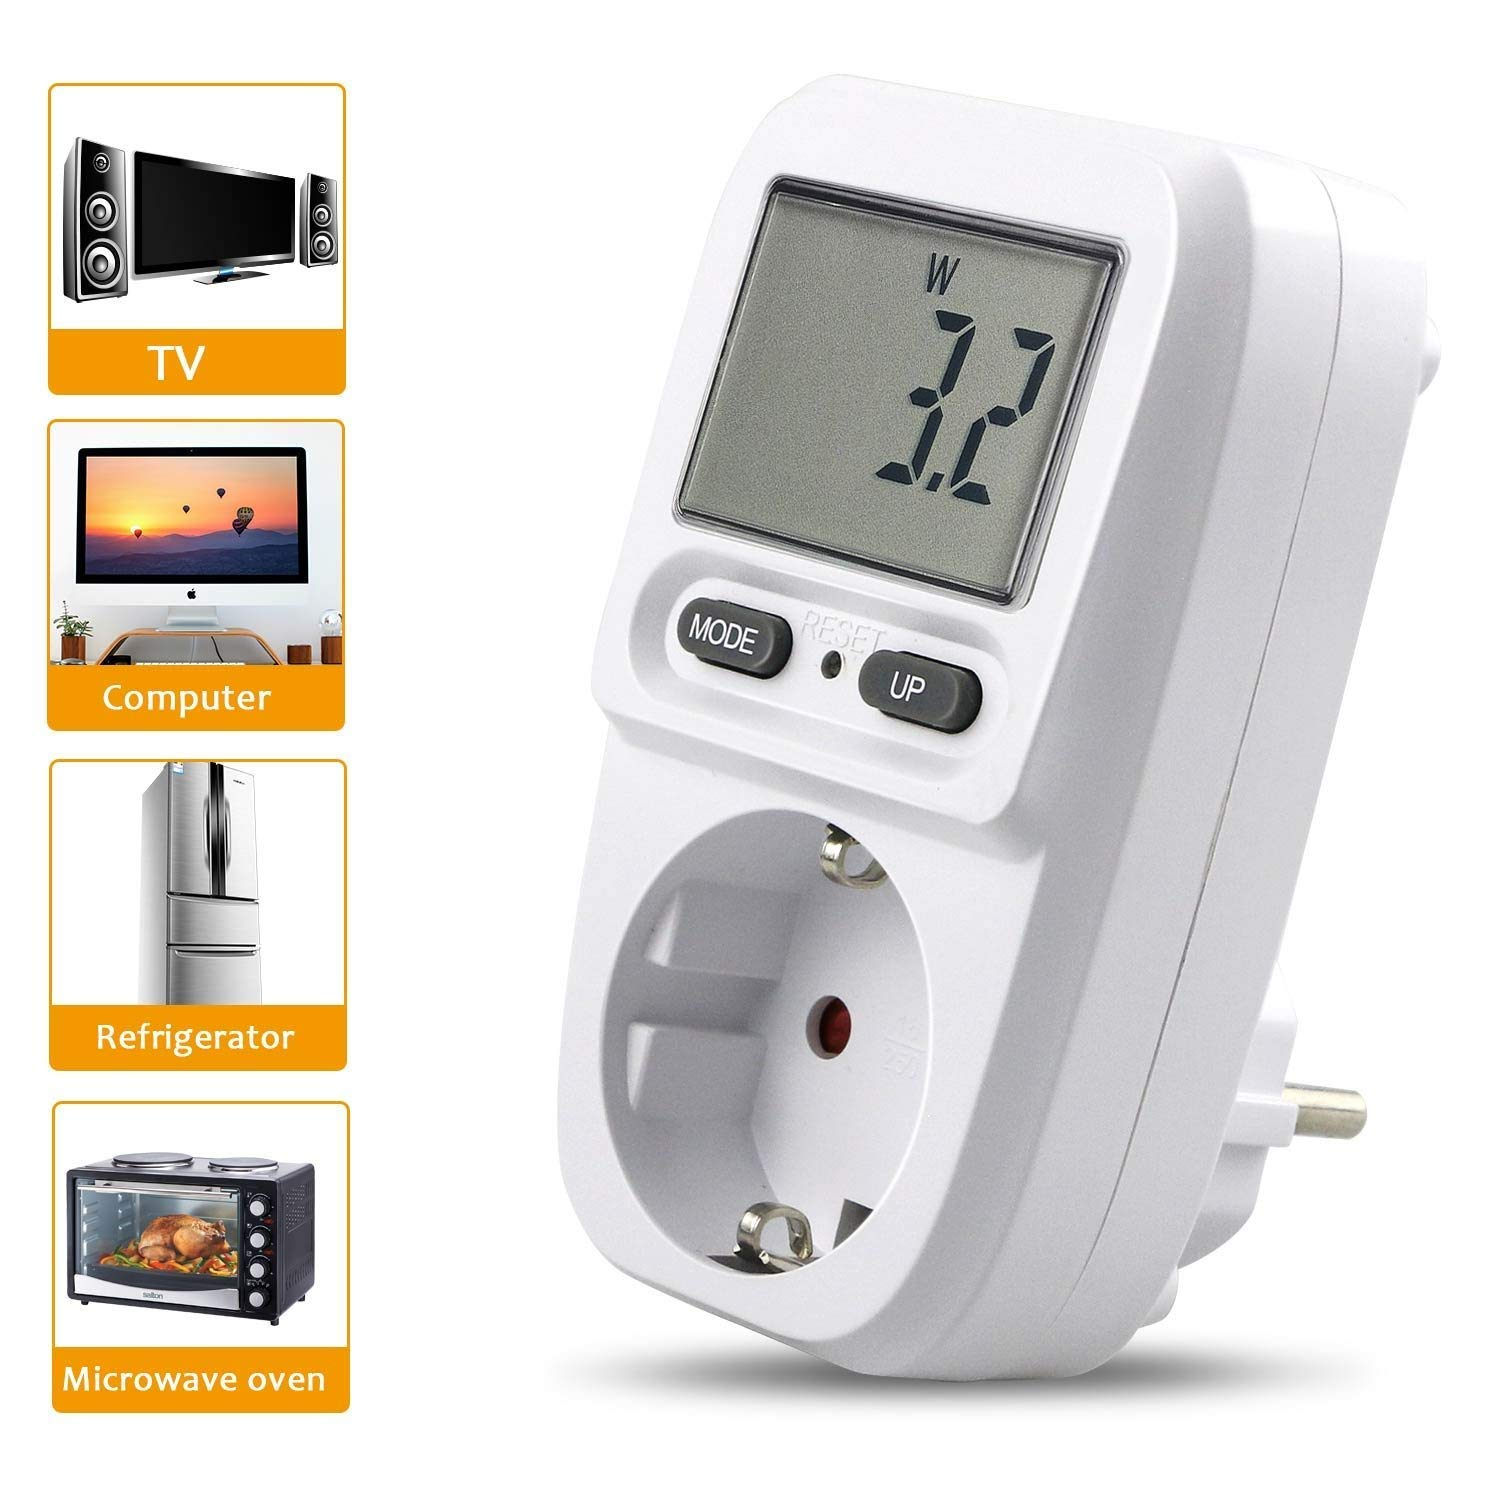 Gifort Power Meter, Plug Power Consumption Meter, Plug Power Meter, Energy Voltage Amps Watt Electricity Usage Monitor Analyzer with Digital LCD Display Reduce Your Energy Costs